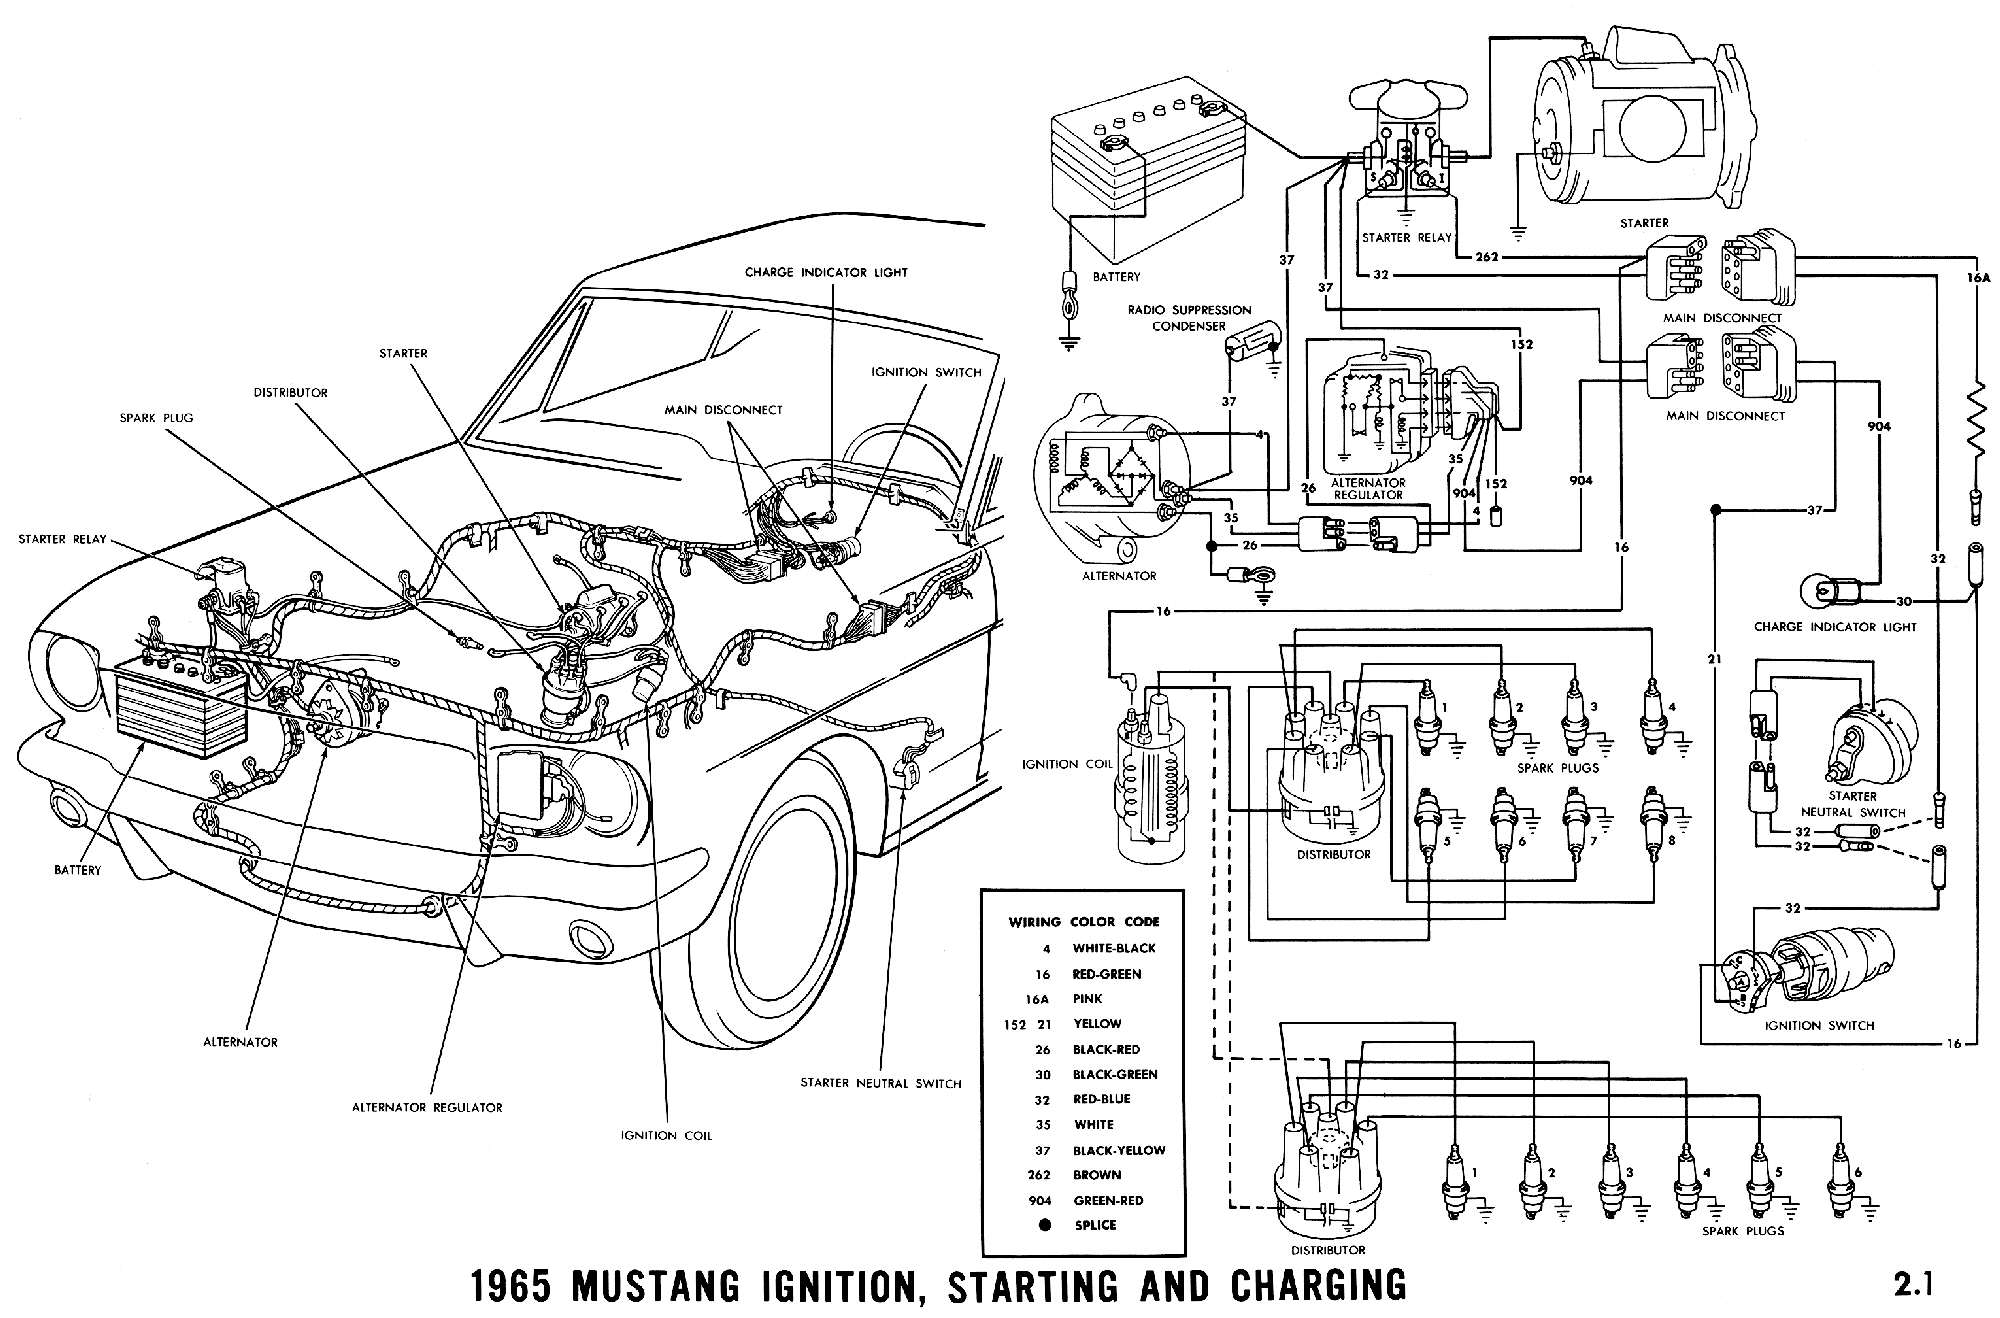 mustang wiring harness 65 66 data wiring diagrams u2022 rh mikeadkinsguitar com 65 mustang wiring diagram manual 65 mustang horn wiring diagram